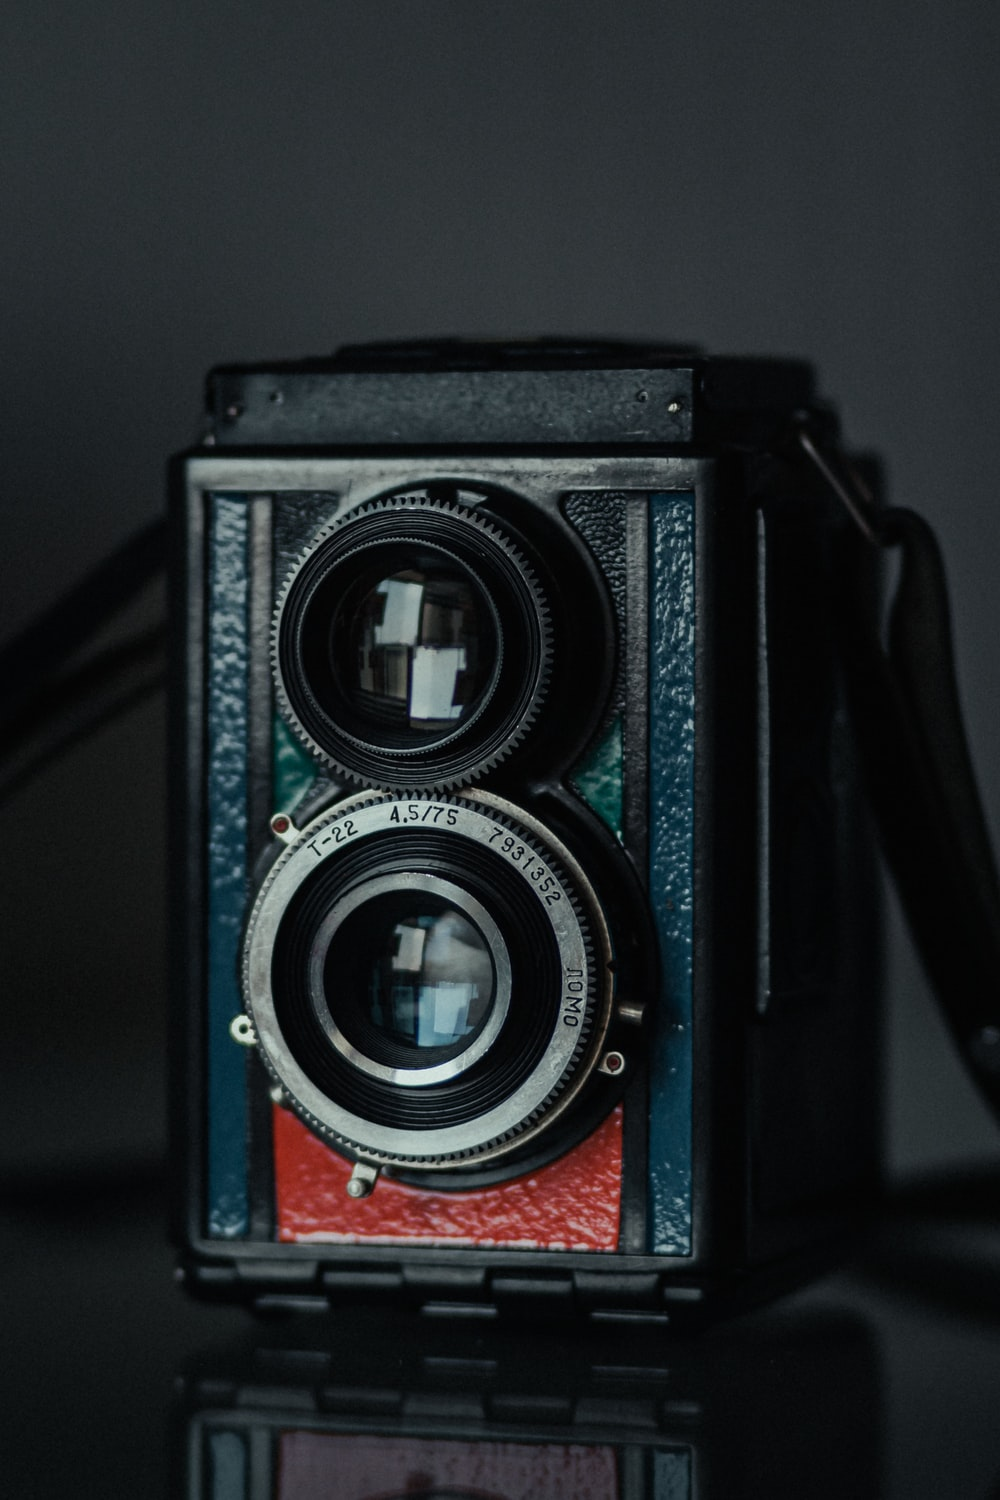 black and red camera on white table